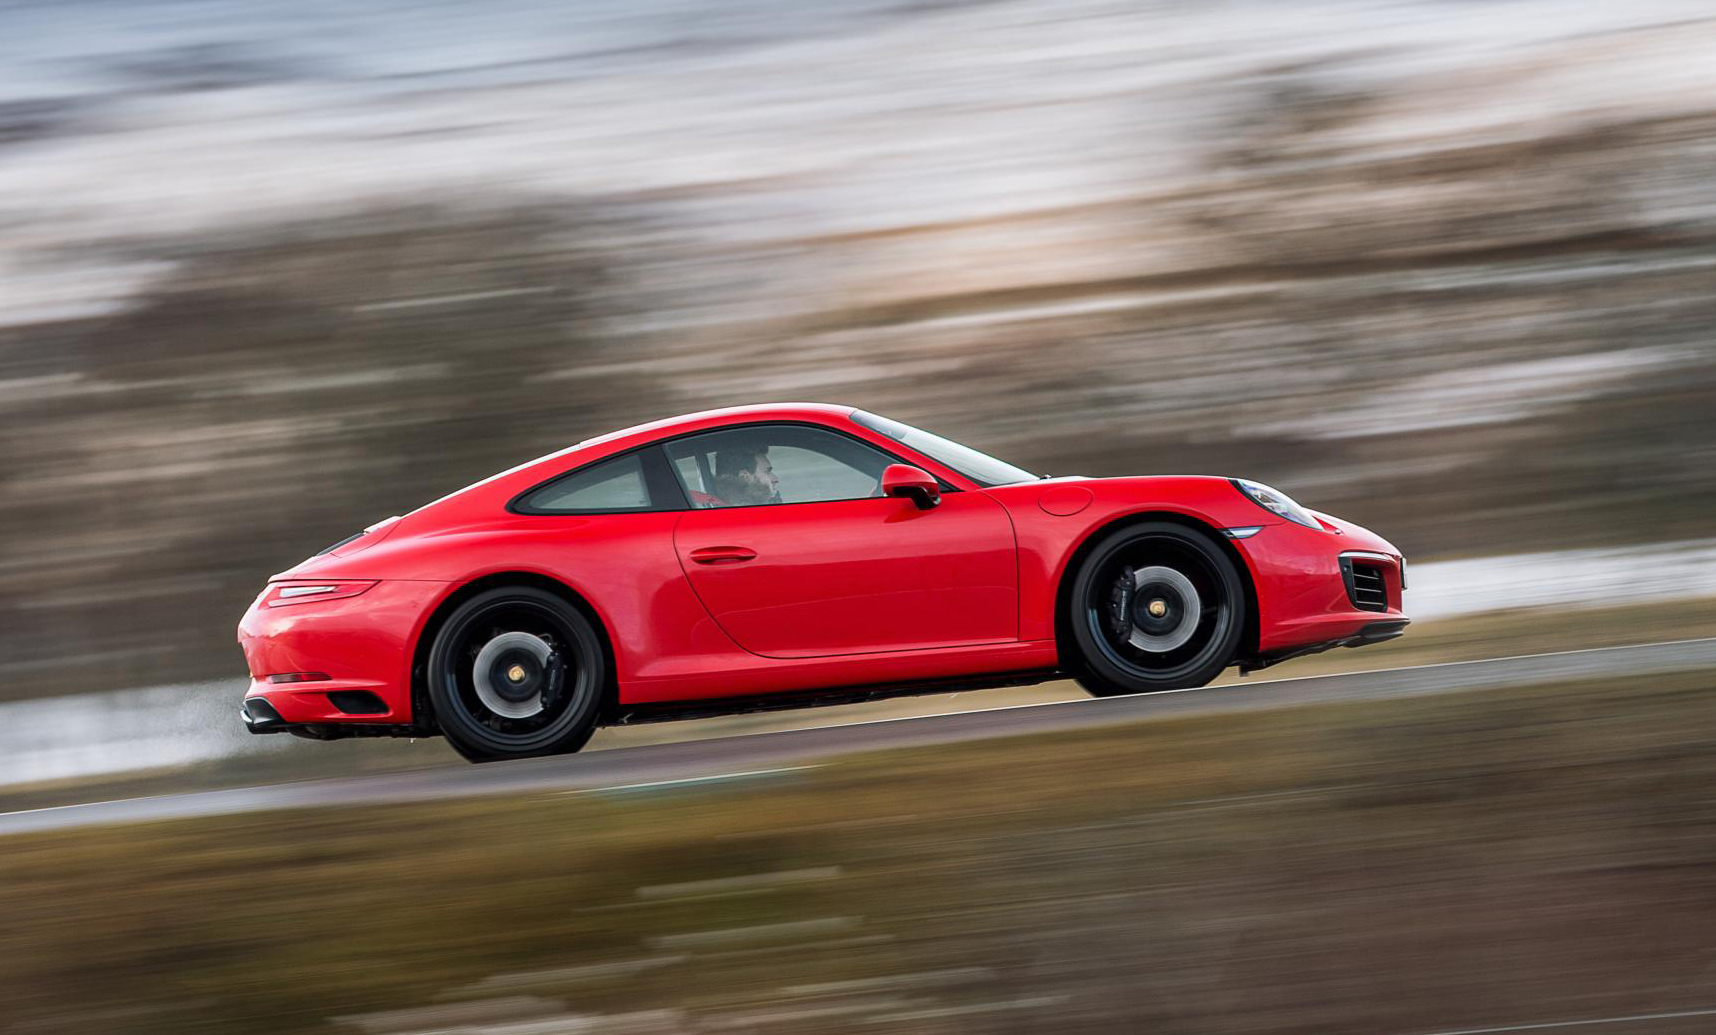 You don't need a 911-sized budget to make motoring fun